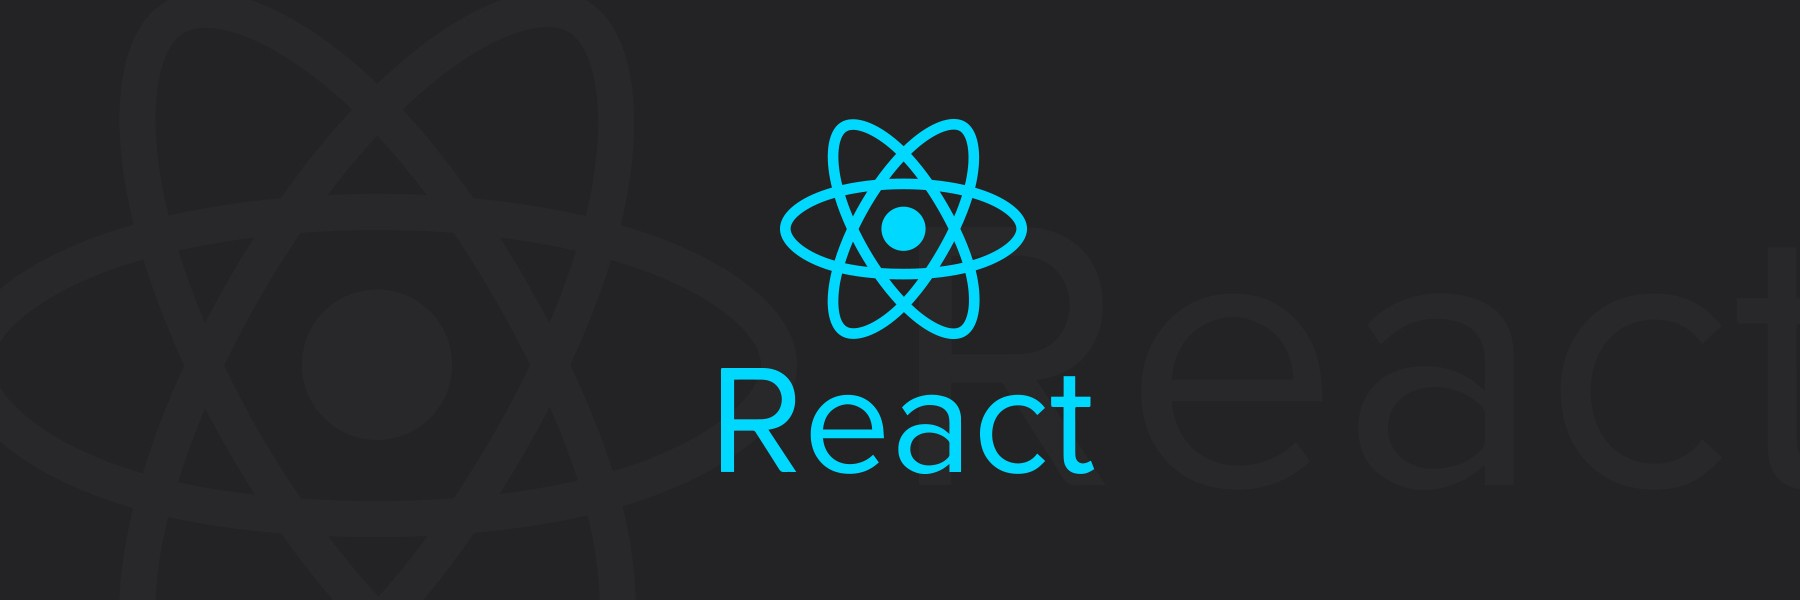 Introducing Real-time React SPA template for .NET Core 2.0